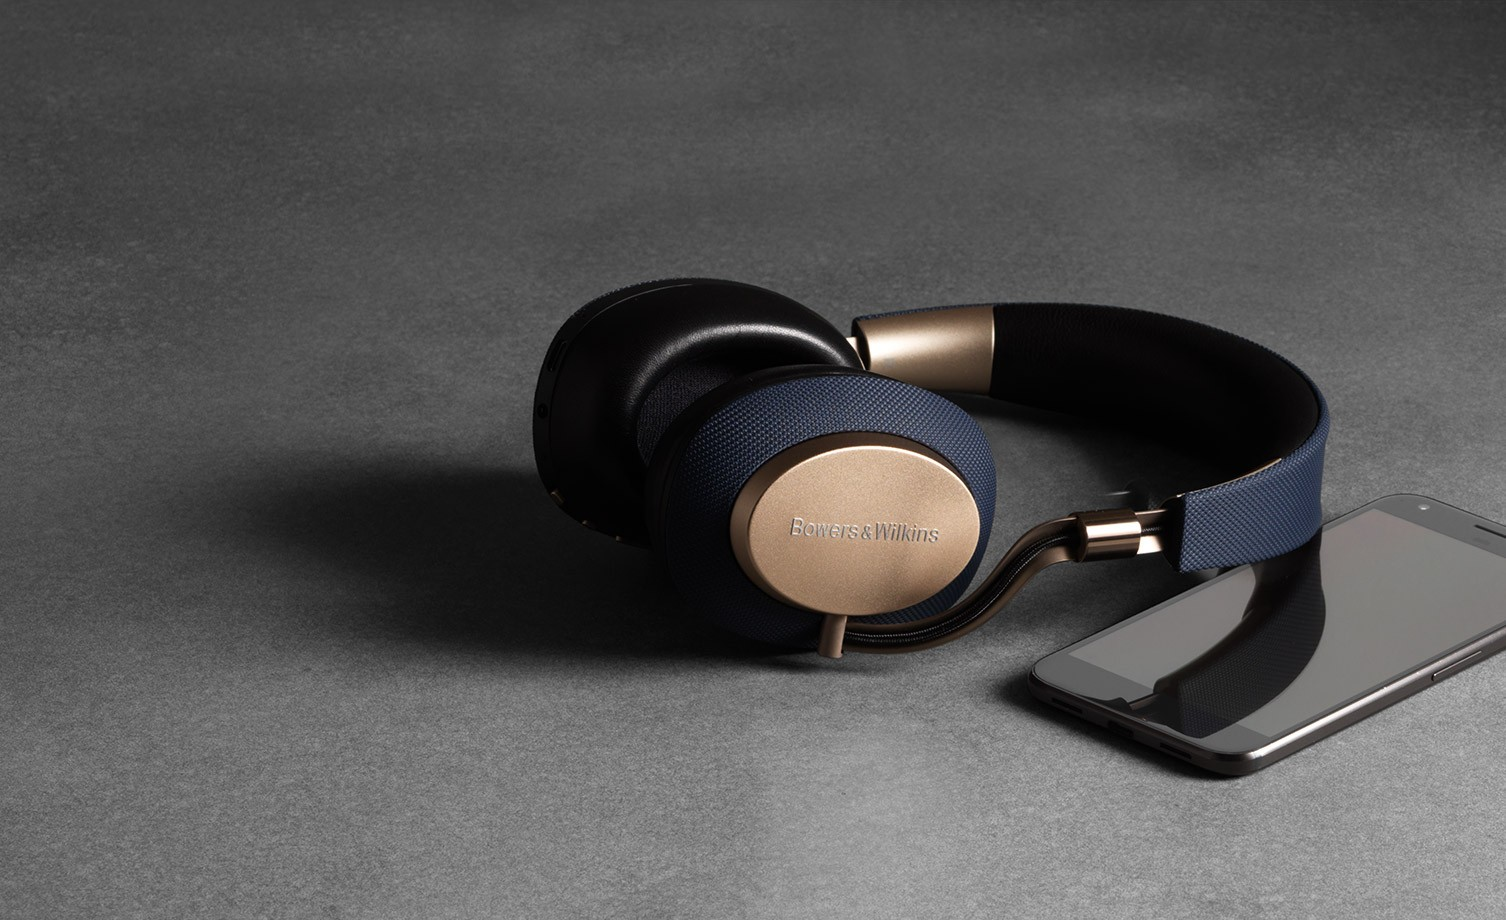 941fbc2f2c4 Five best noise-cancelling headphones for the commute, the office and  long-haul flights | South China Morning Post